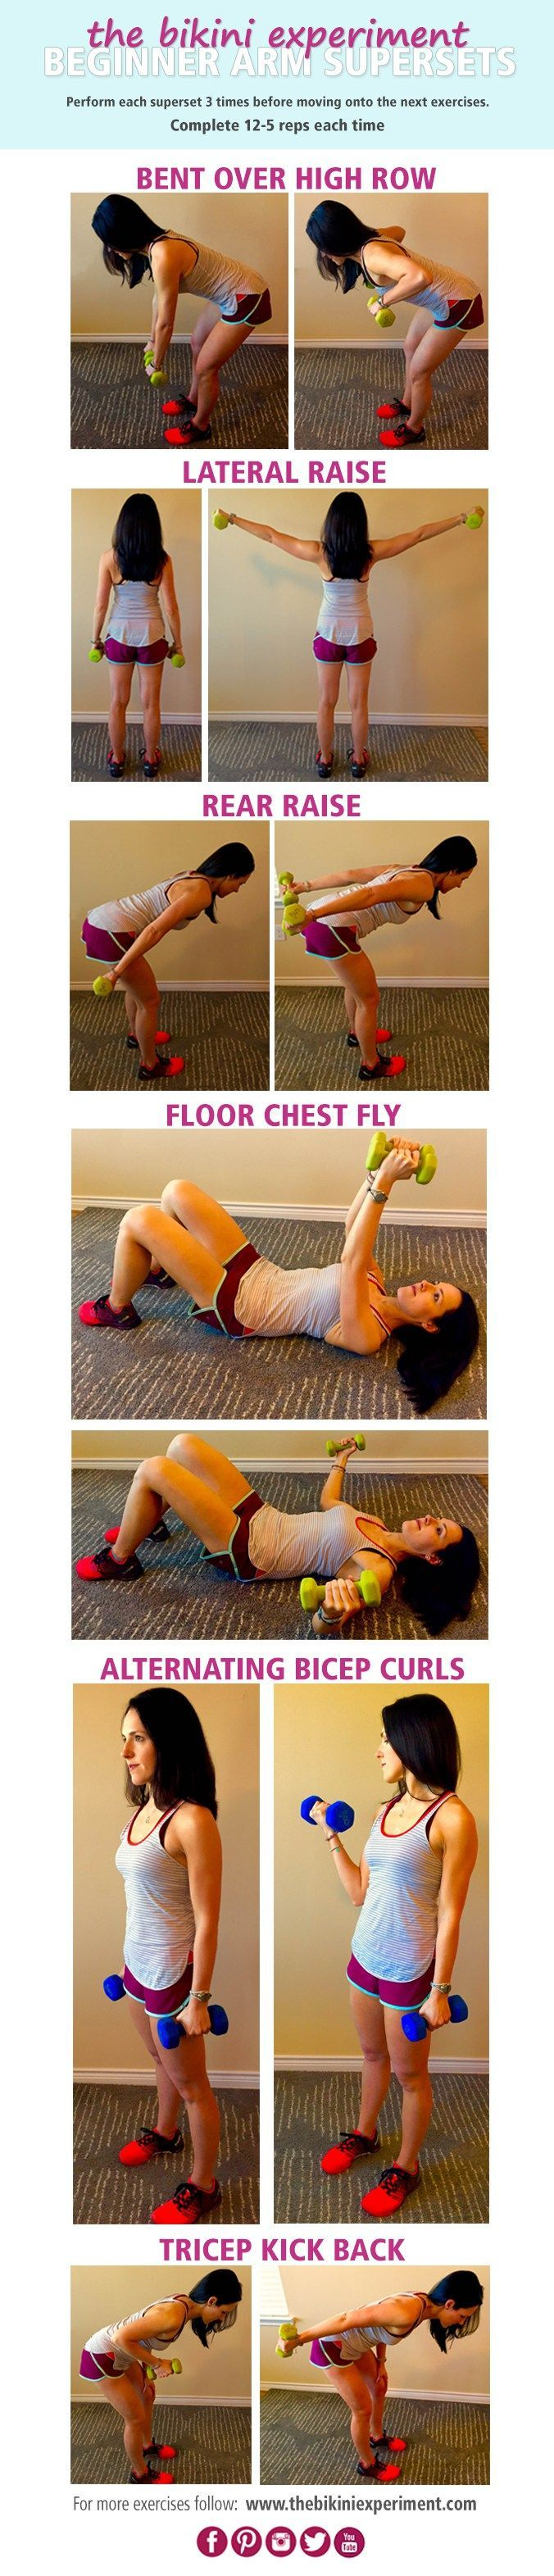 Basic Arm Supersets! Follow along for basic arm supersets designed for toned and lean arms. Grab a pair of dumbbells for this quick and effective workout. | Click for more workouts to get lean and strong.